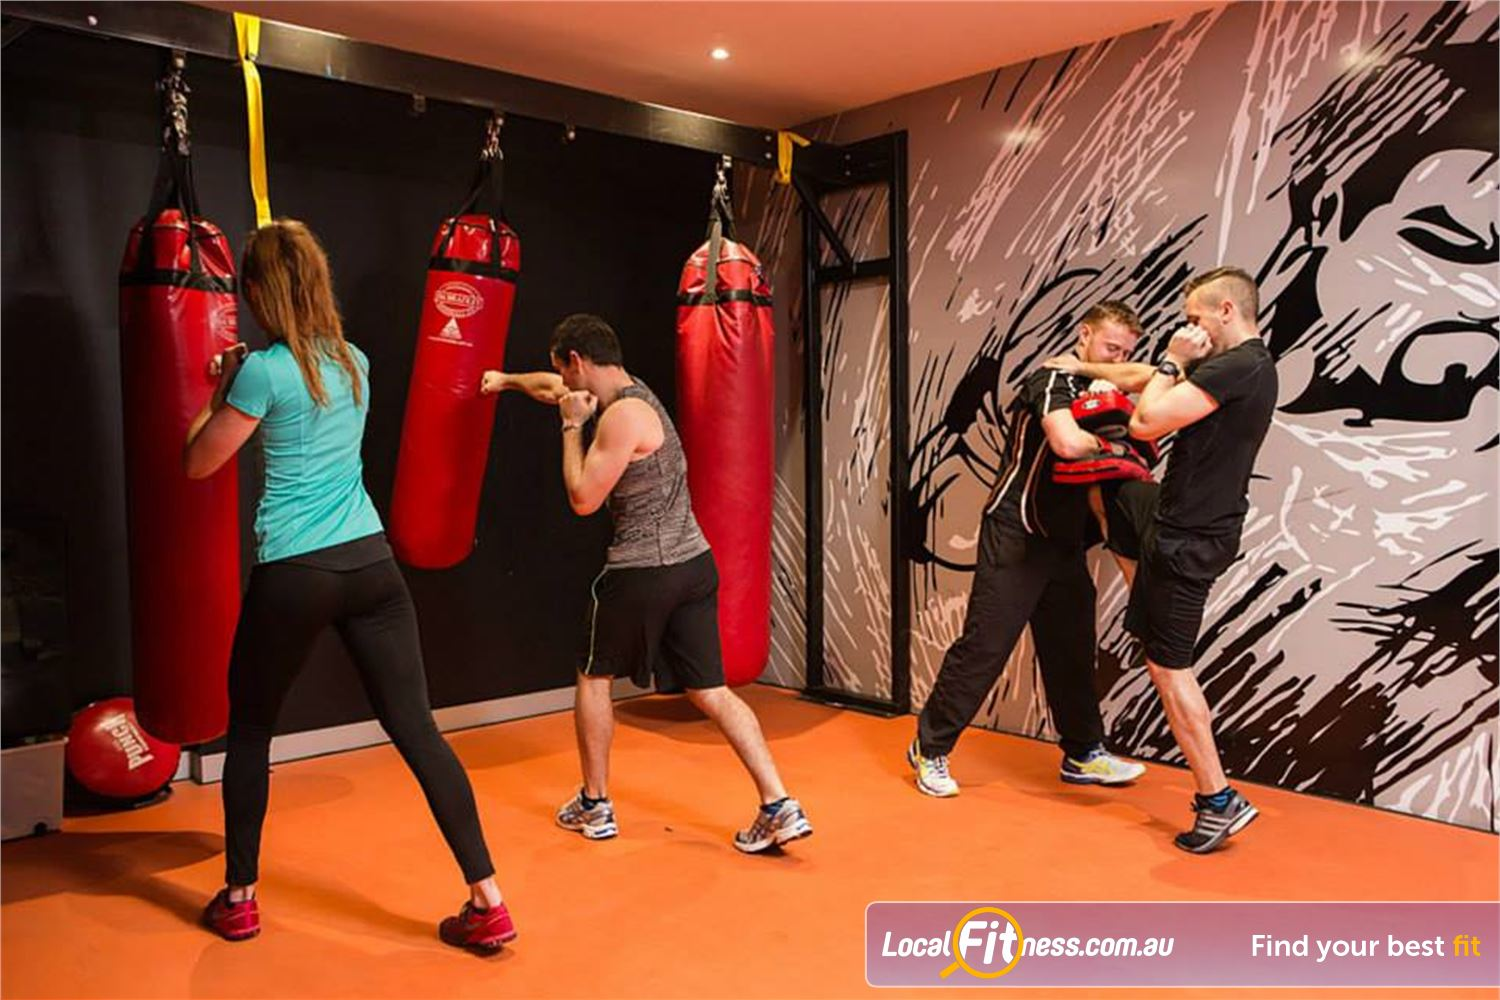 South Pacific Health Clubs Near Elwood The dedicated St Kilda boxing area. Try a class today.